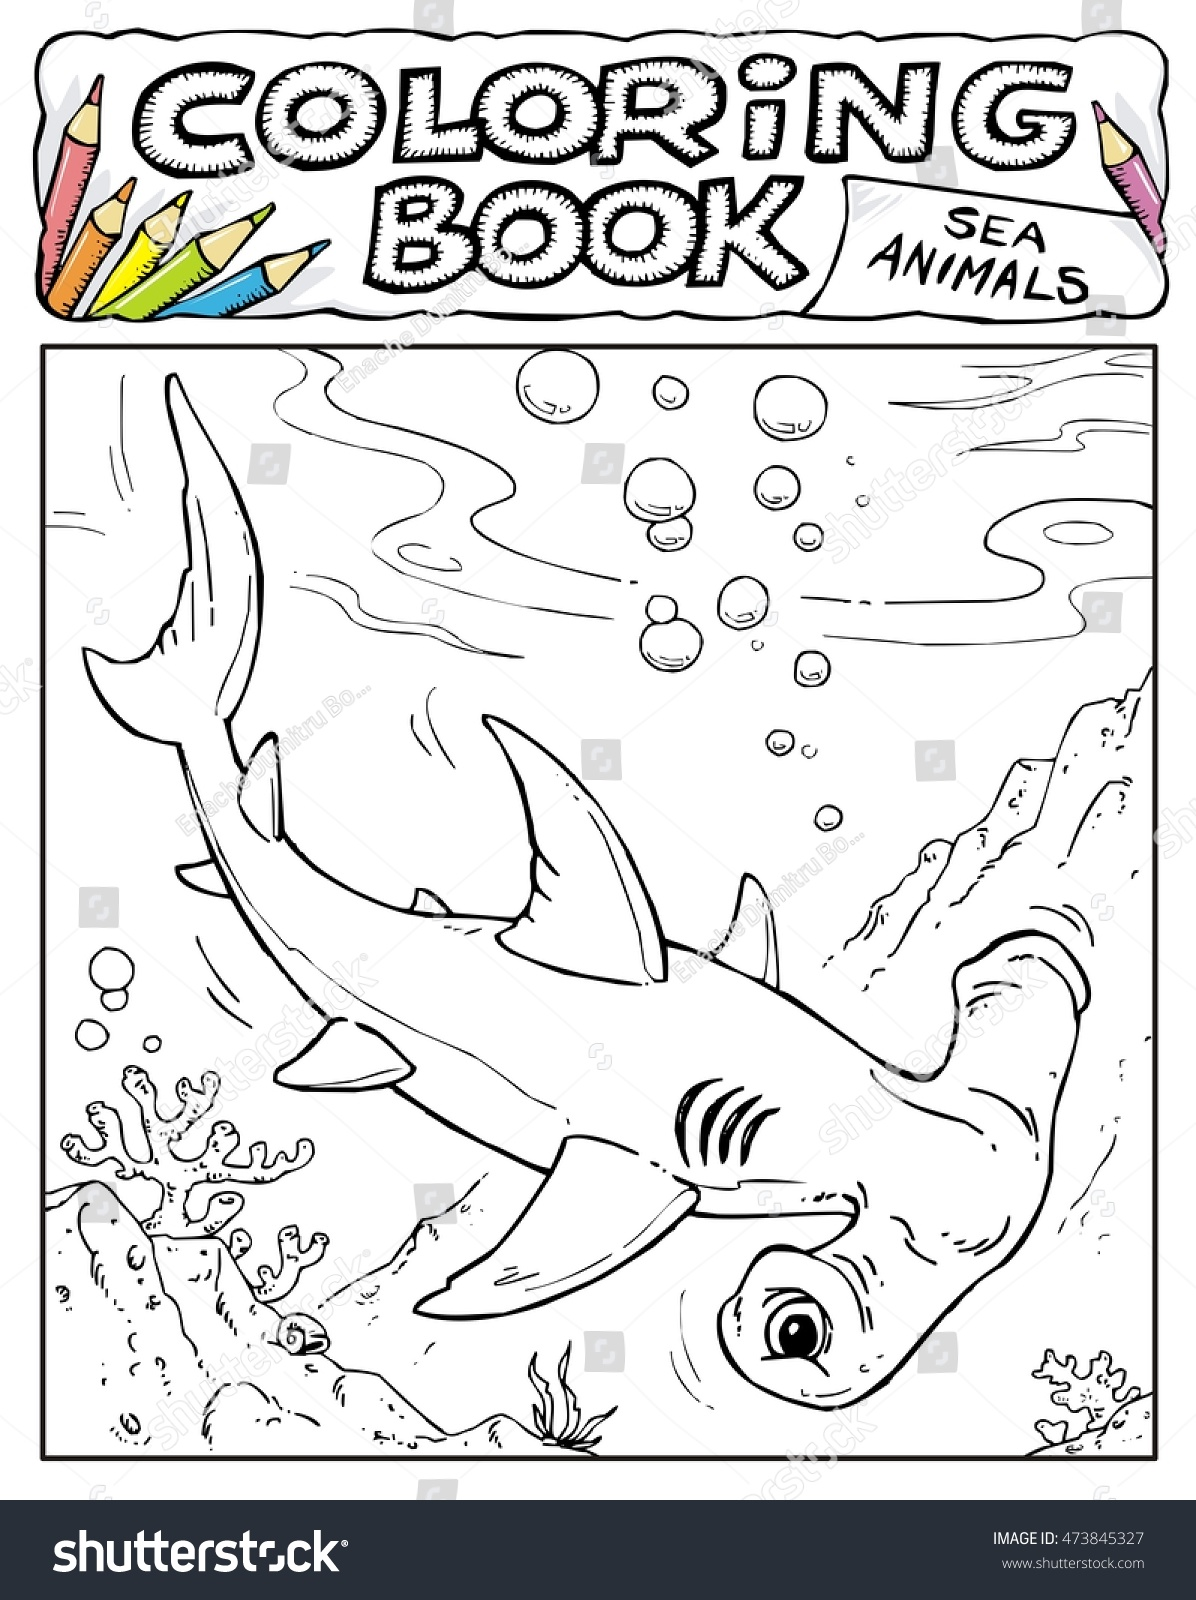 hammerhead shark coloring book pages sea animals collection page no 2 5 - Shark Coloring Book